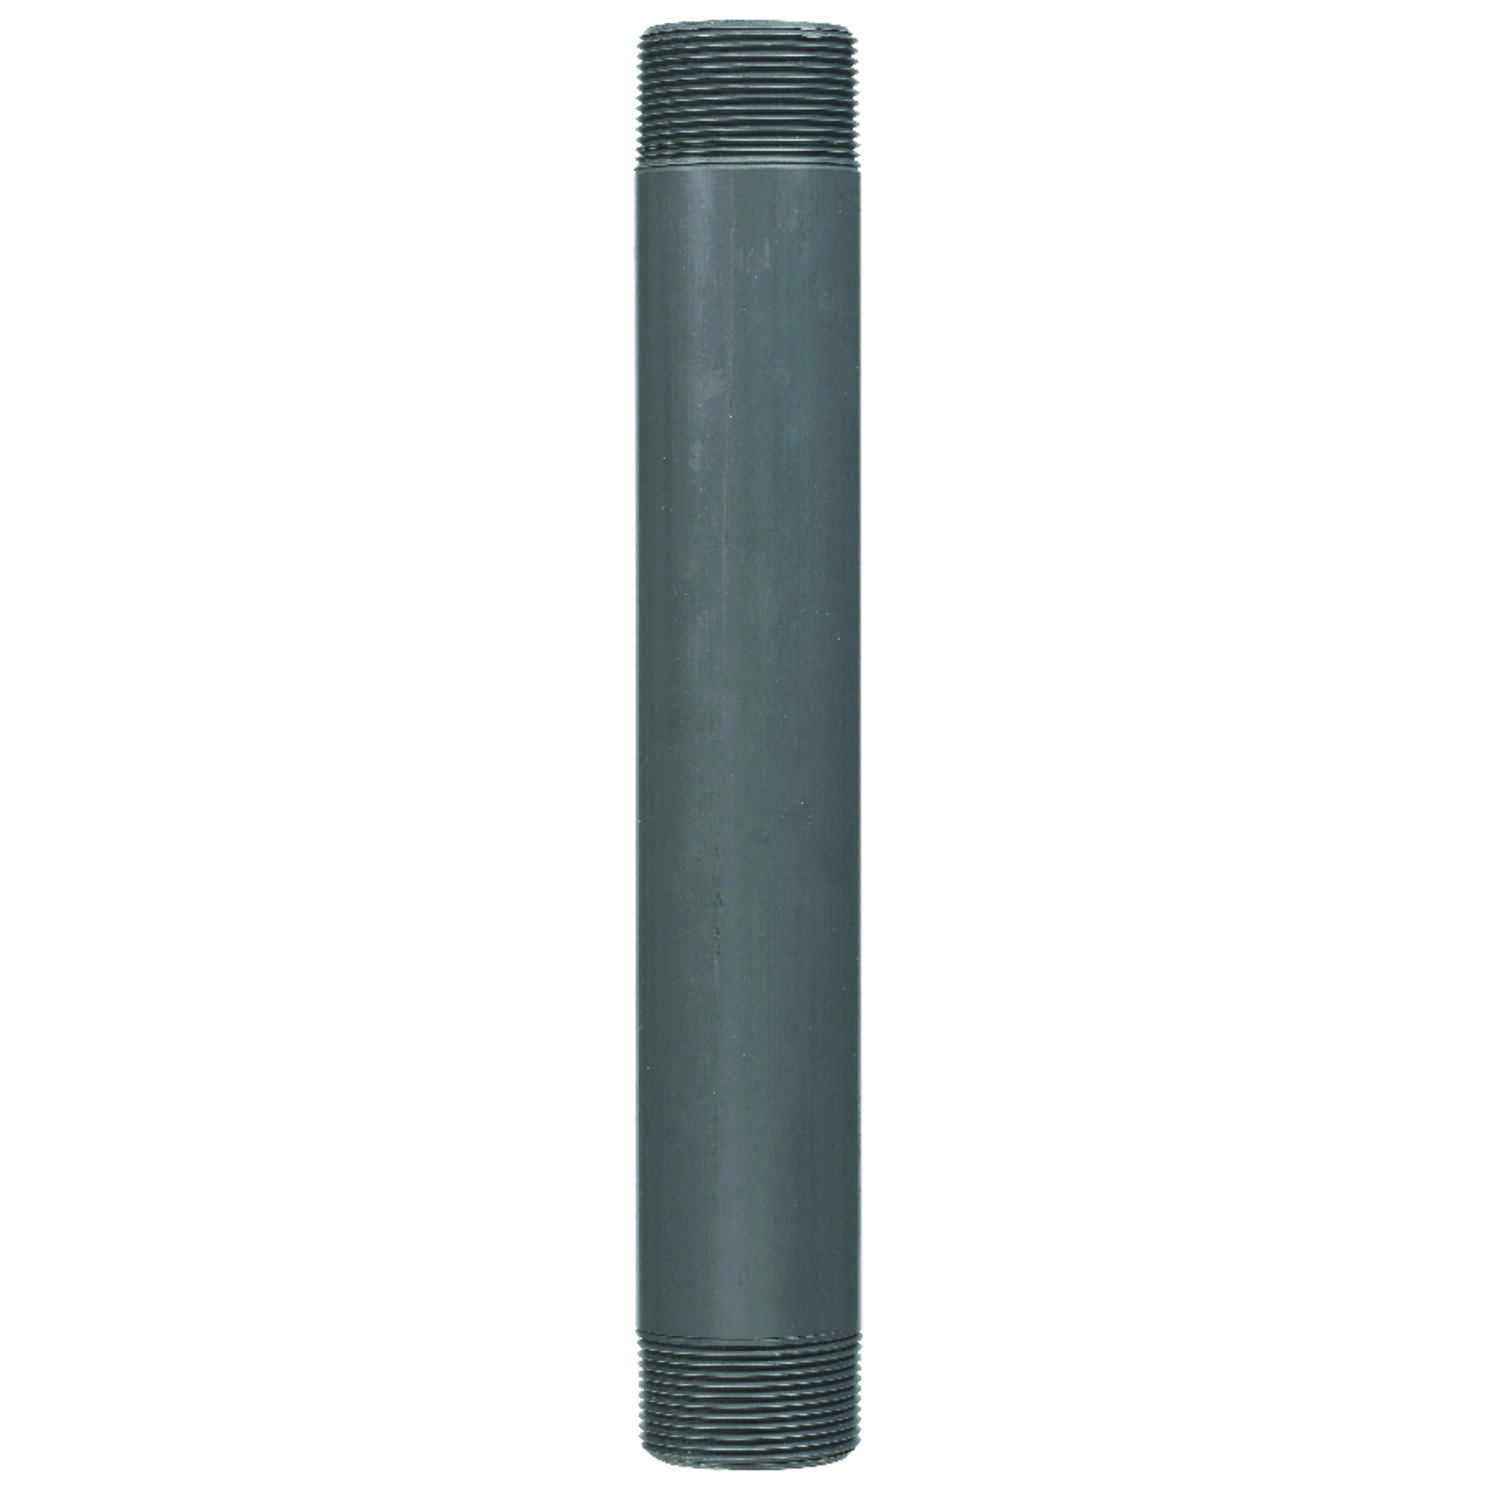 BK Products  Schedule 80  1-1/2 in. MPT   x 1-1/2 in. Dia. MPT  PVC  For Pressure Applications Pipe